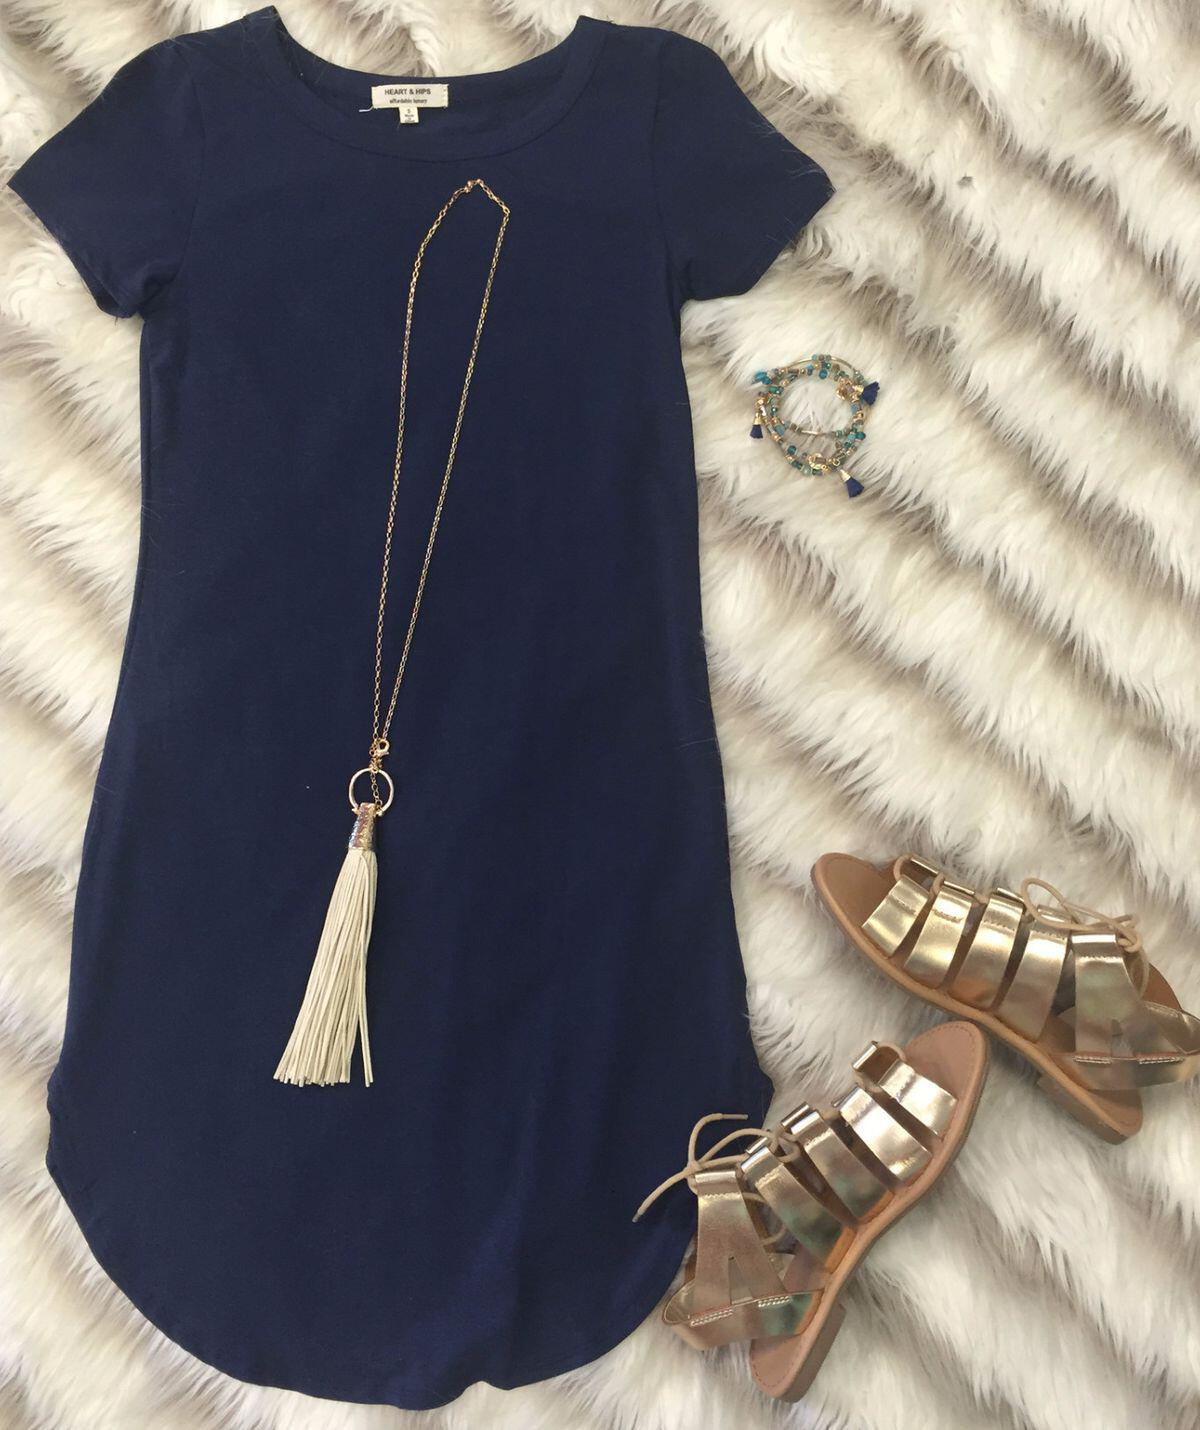 15 ways to wear a navy dress outfit and what accessories to choose 11 - 15 ways to wear a navy dress outfit and what accessories to choose